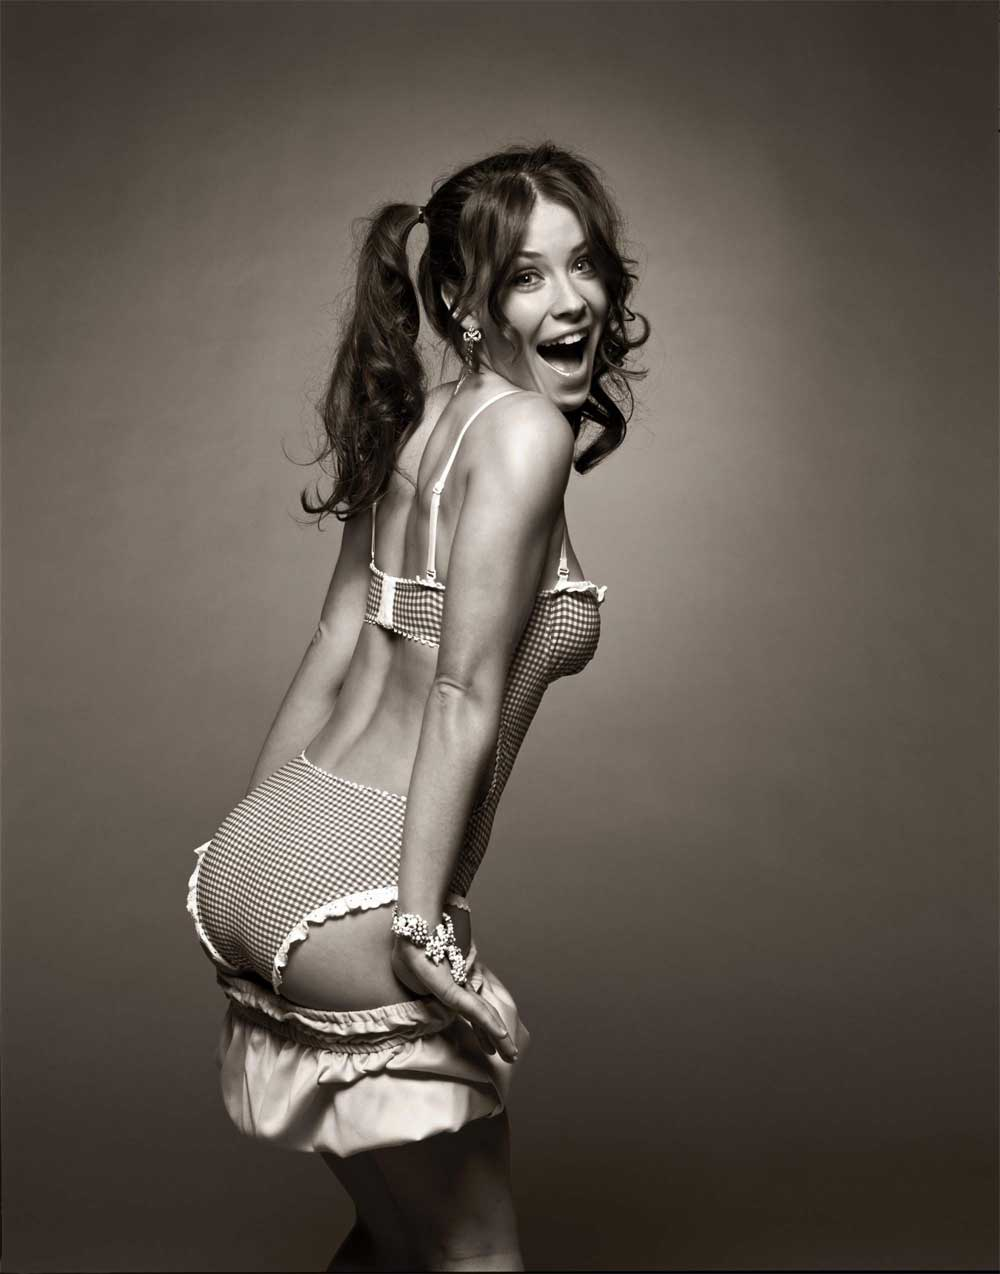 evangeline lilly panties